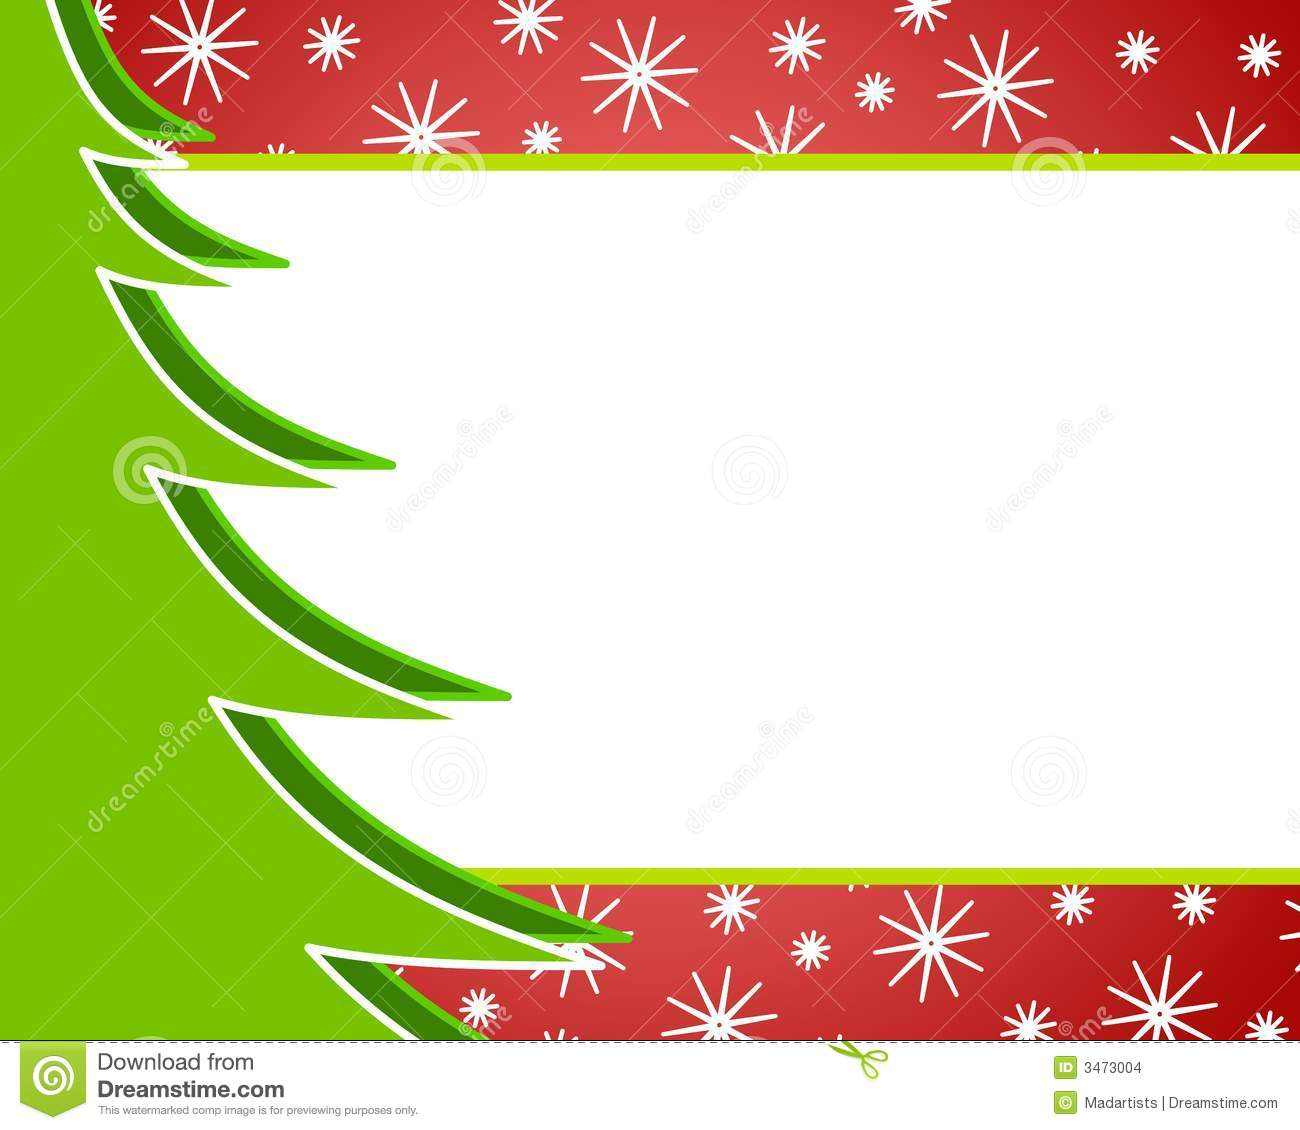 christmas tree background 2 stock illustration illustration of rh dreamstime com animated christmas background clipart christmas background images clipart